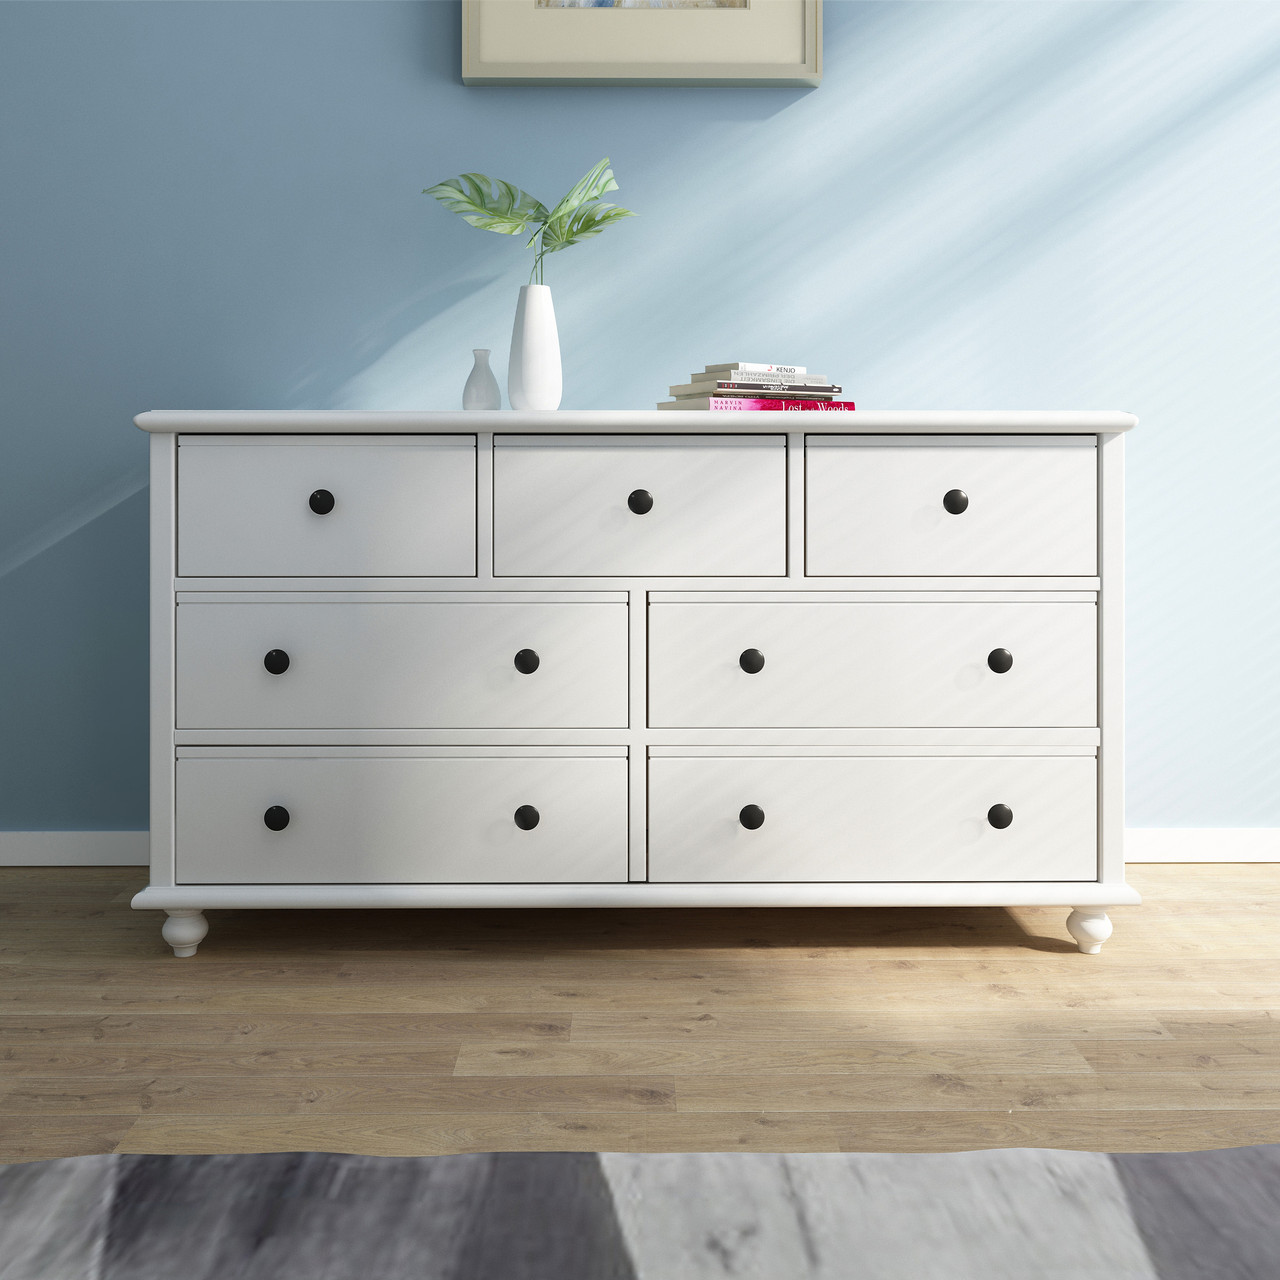 Buy Home Office Desk Online Australia 7 Chest Of Drawers